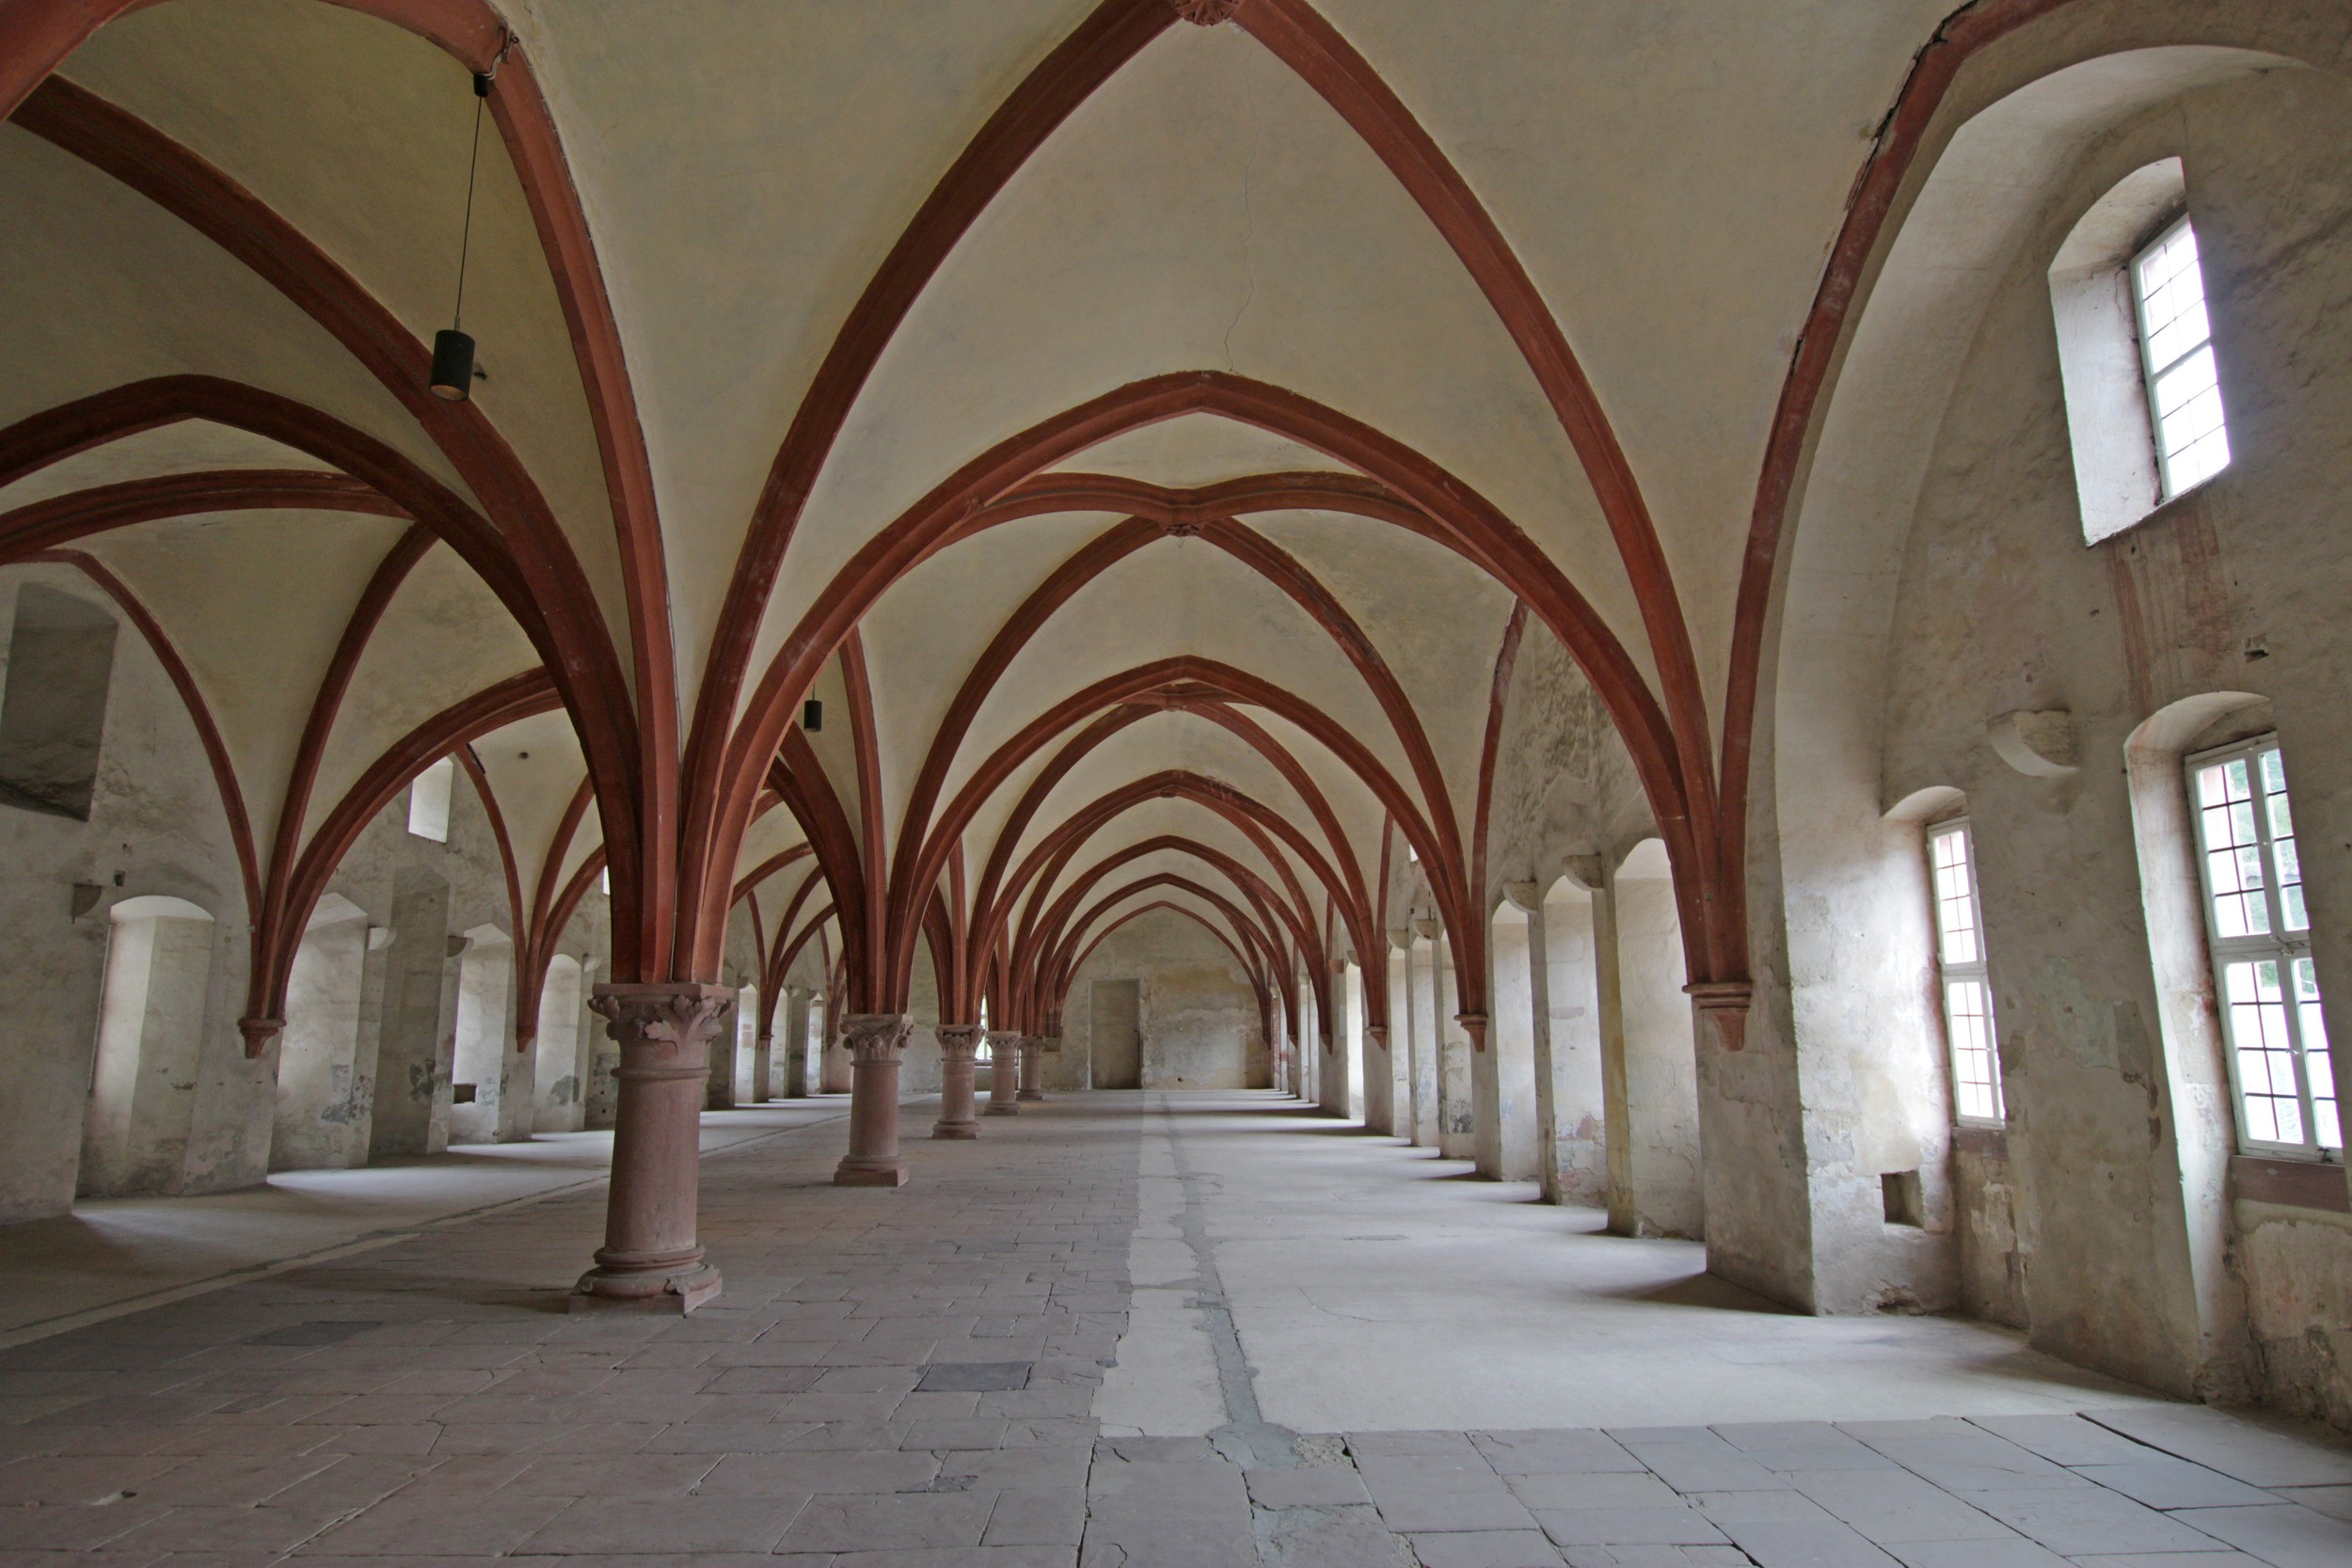 Eberbach Abbey Dormitory - Ertville, Germany - September 2014